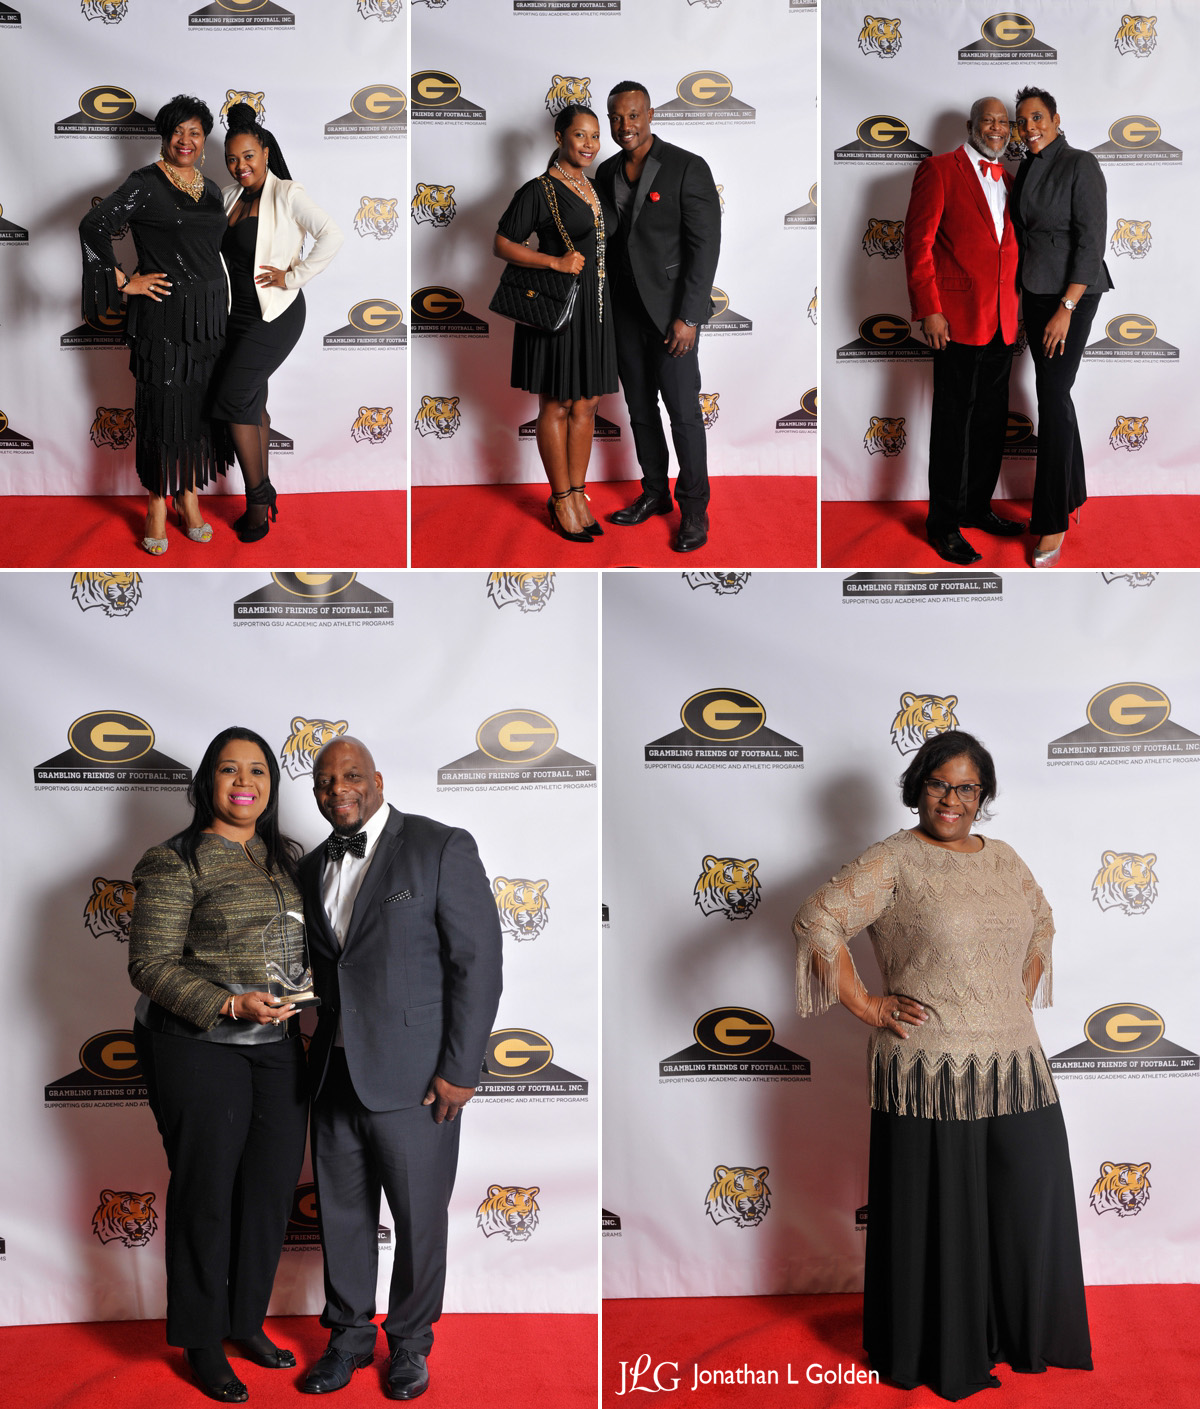 grambling-party-in-houston-2